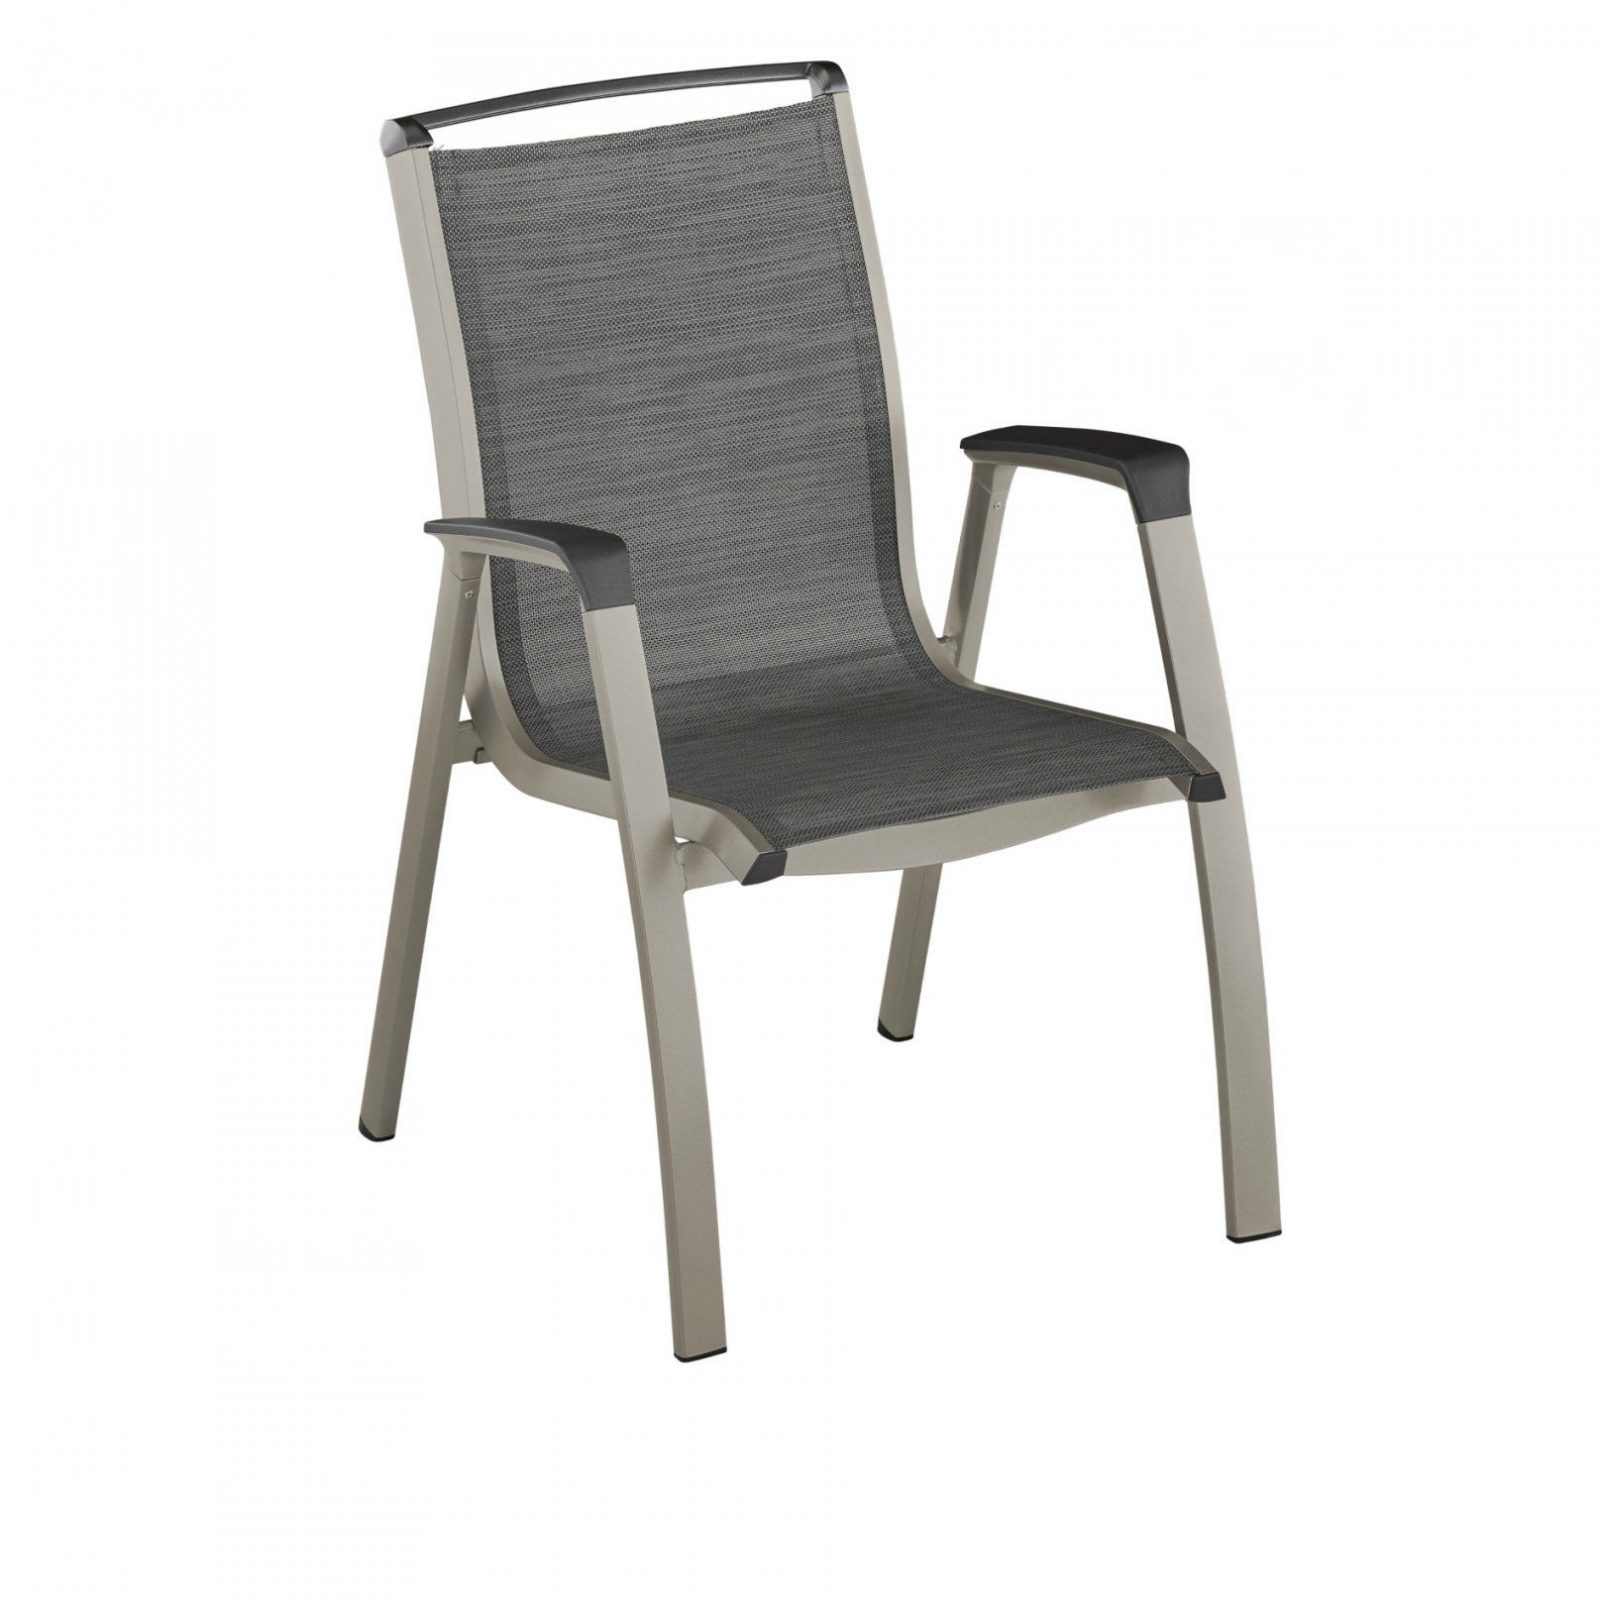 Kettler Stapelsessel Basic Plusanthrazit Real Stuhl Sitzkissen Sit von Kettler Stuhl Basic Plus Photo